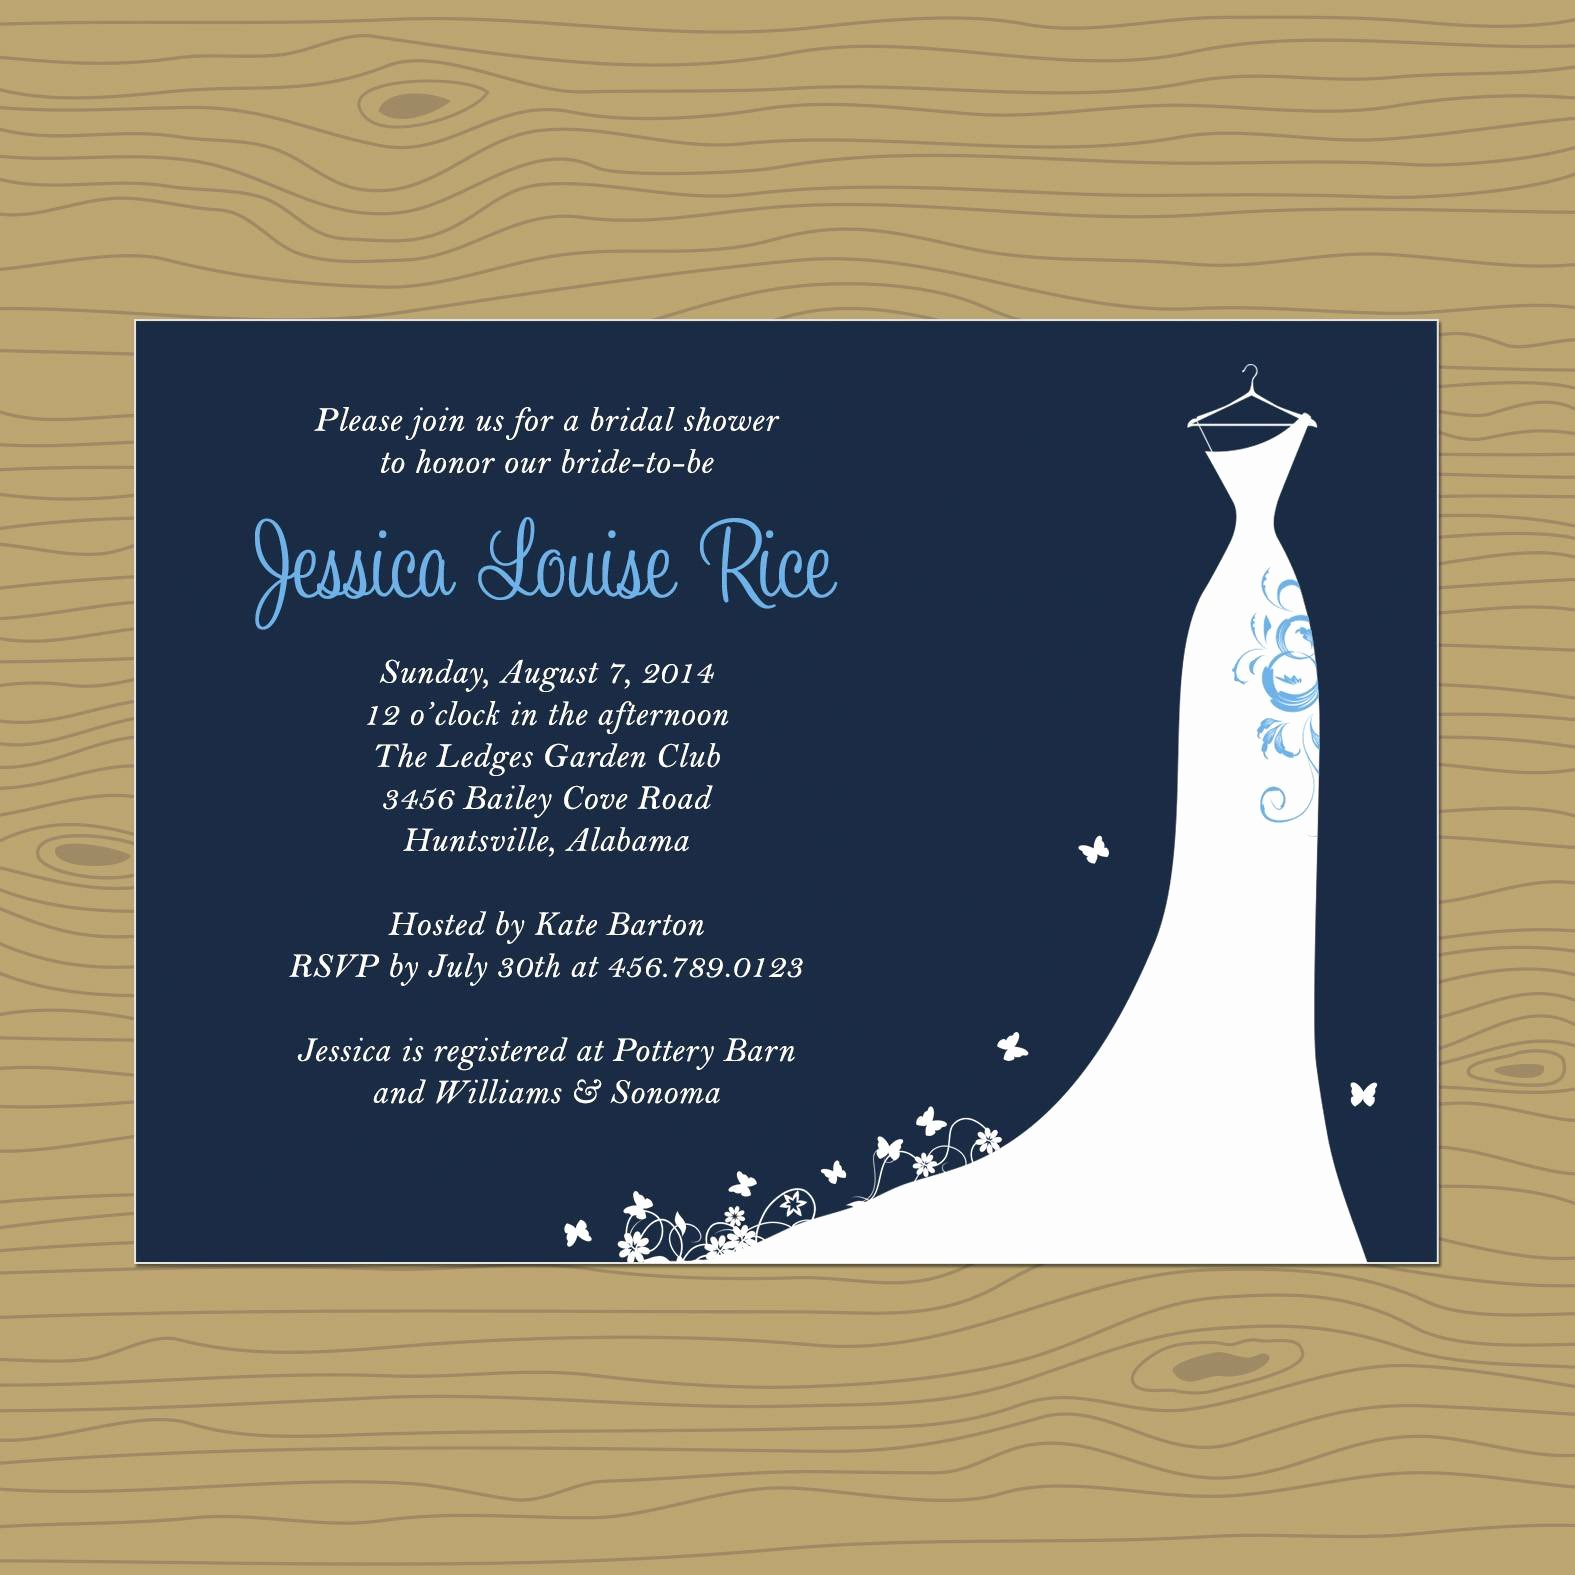 Bridal Shower Invitations Template Luxury Bridal Shower Invitation Templates Bridal Shower